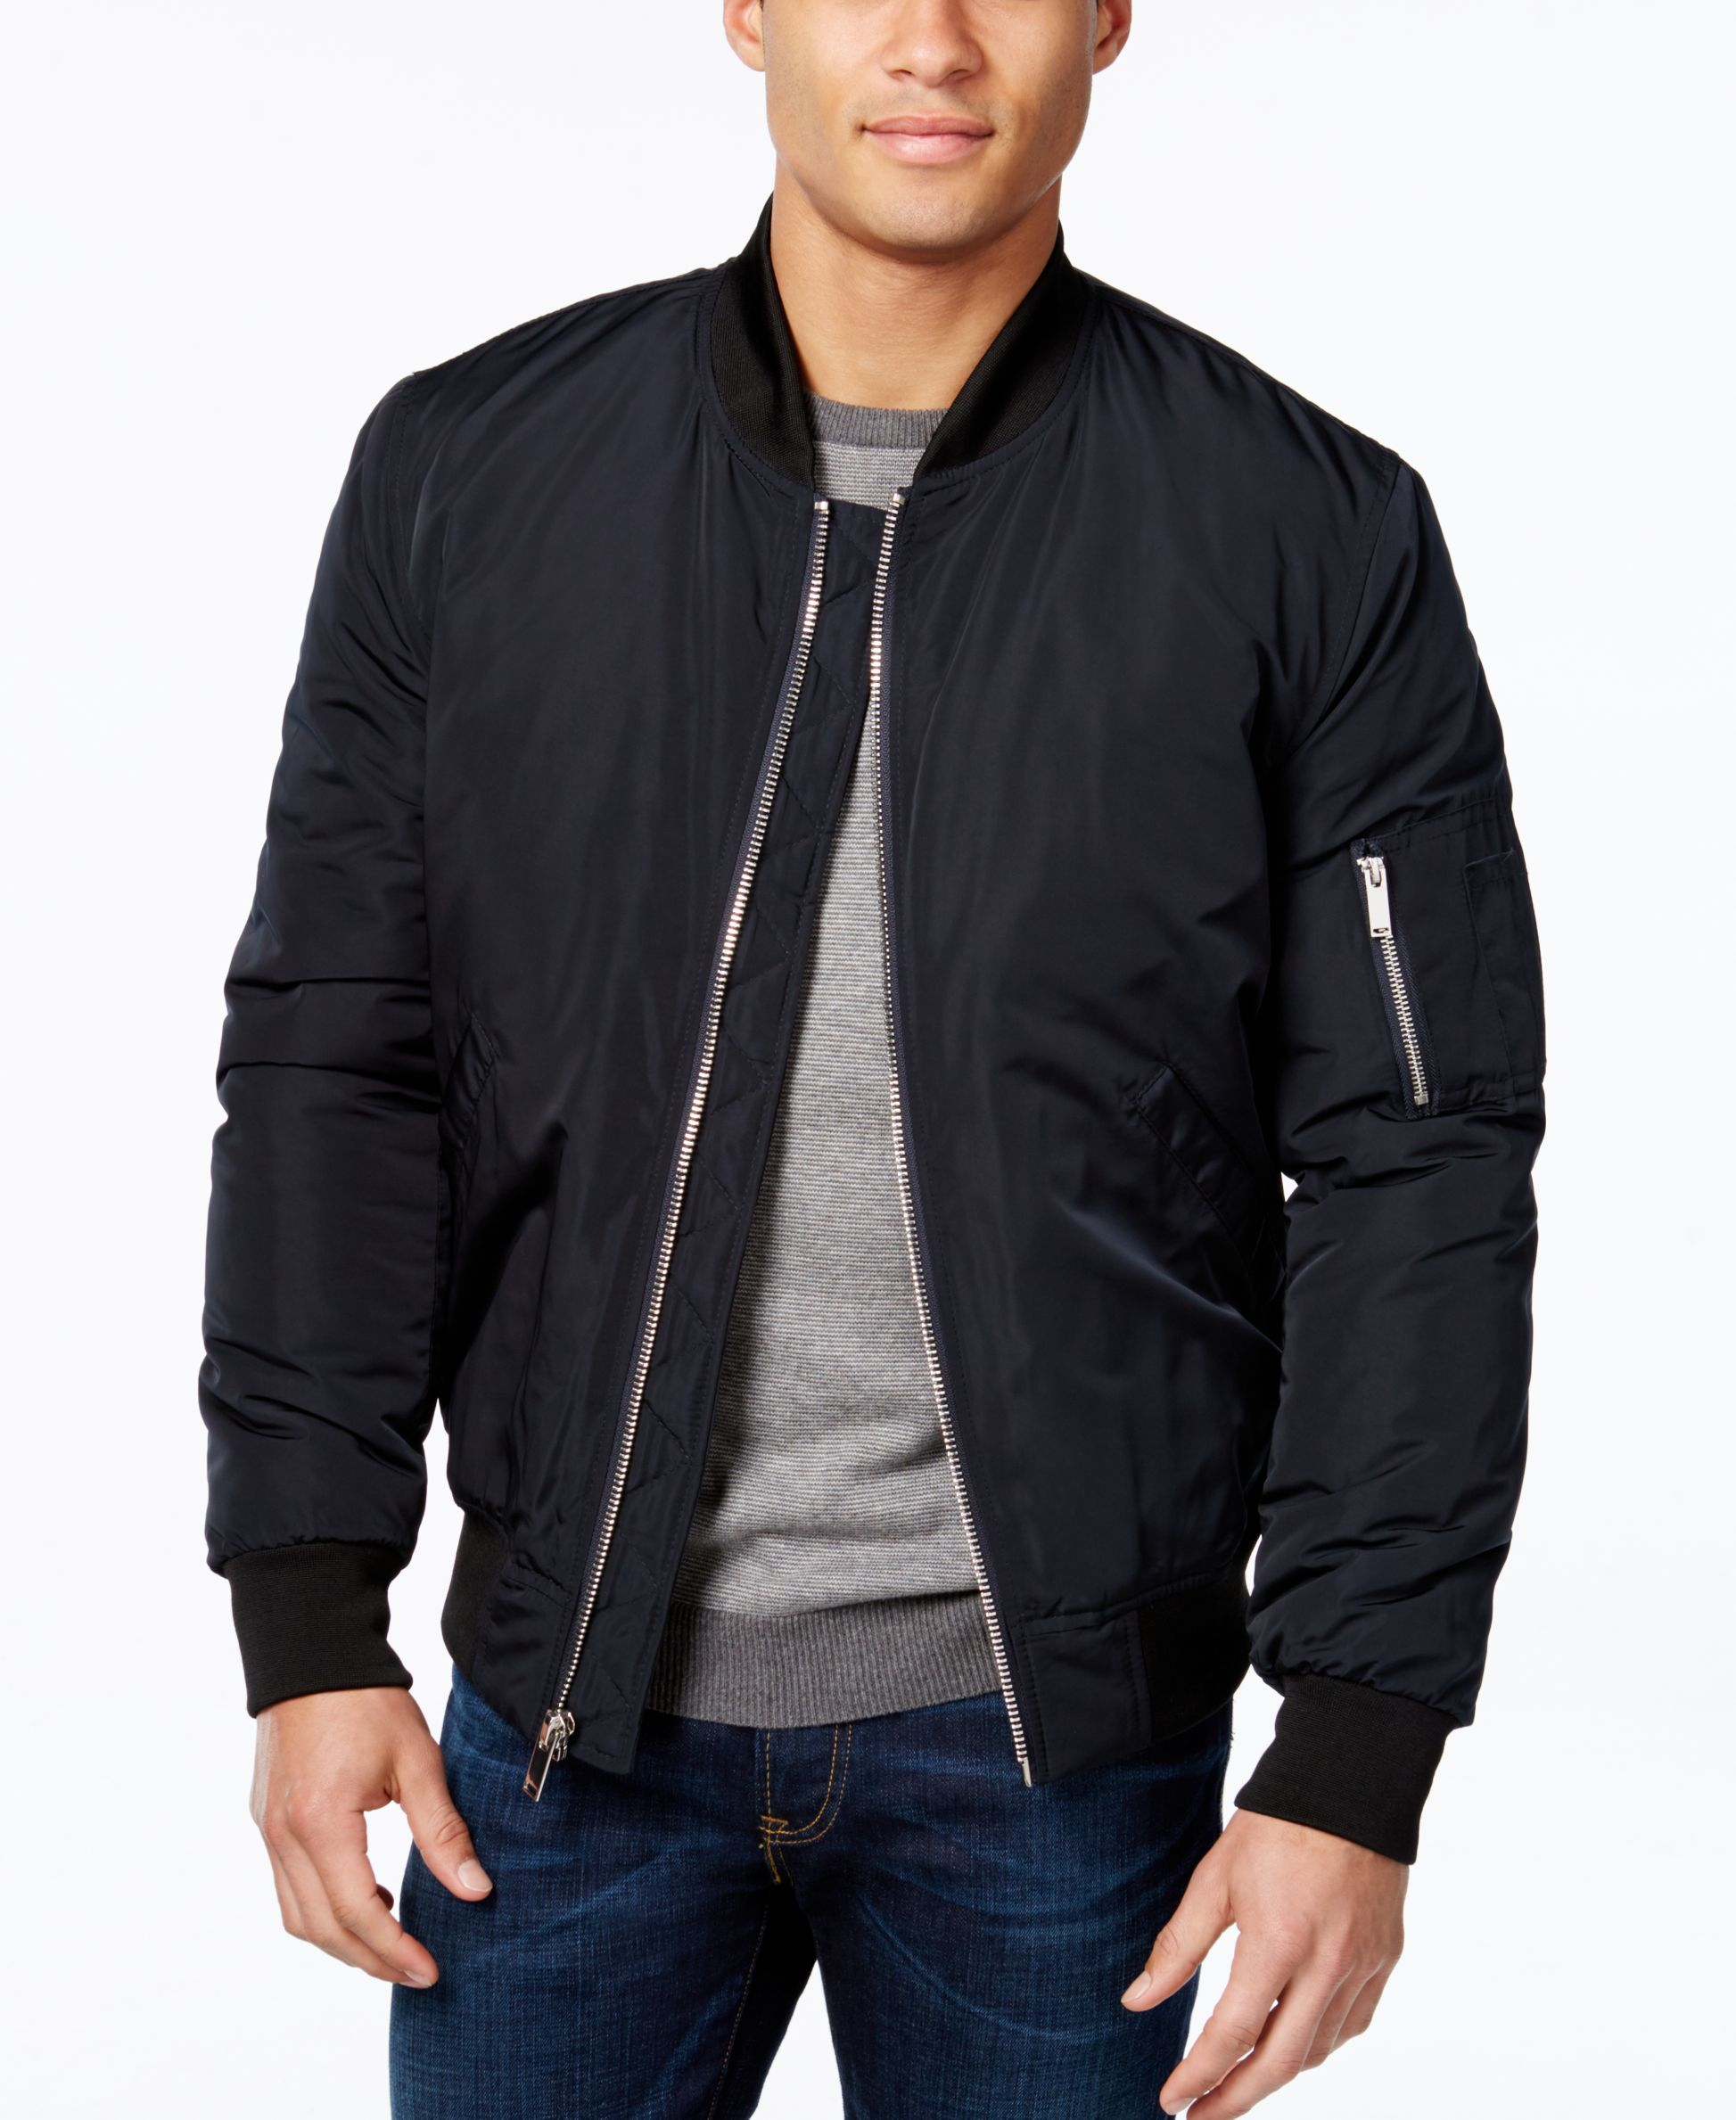 Vince Camuto Men S Lined Bomber Jacket Products